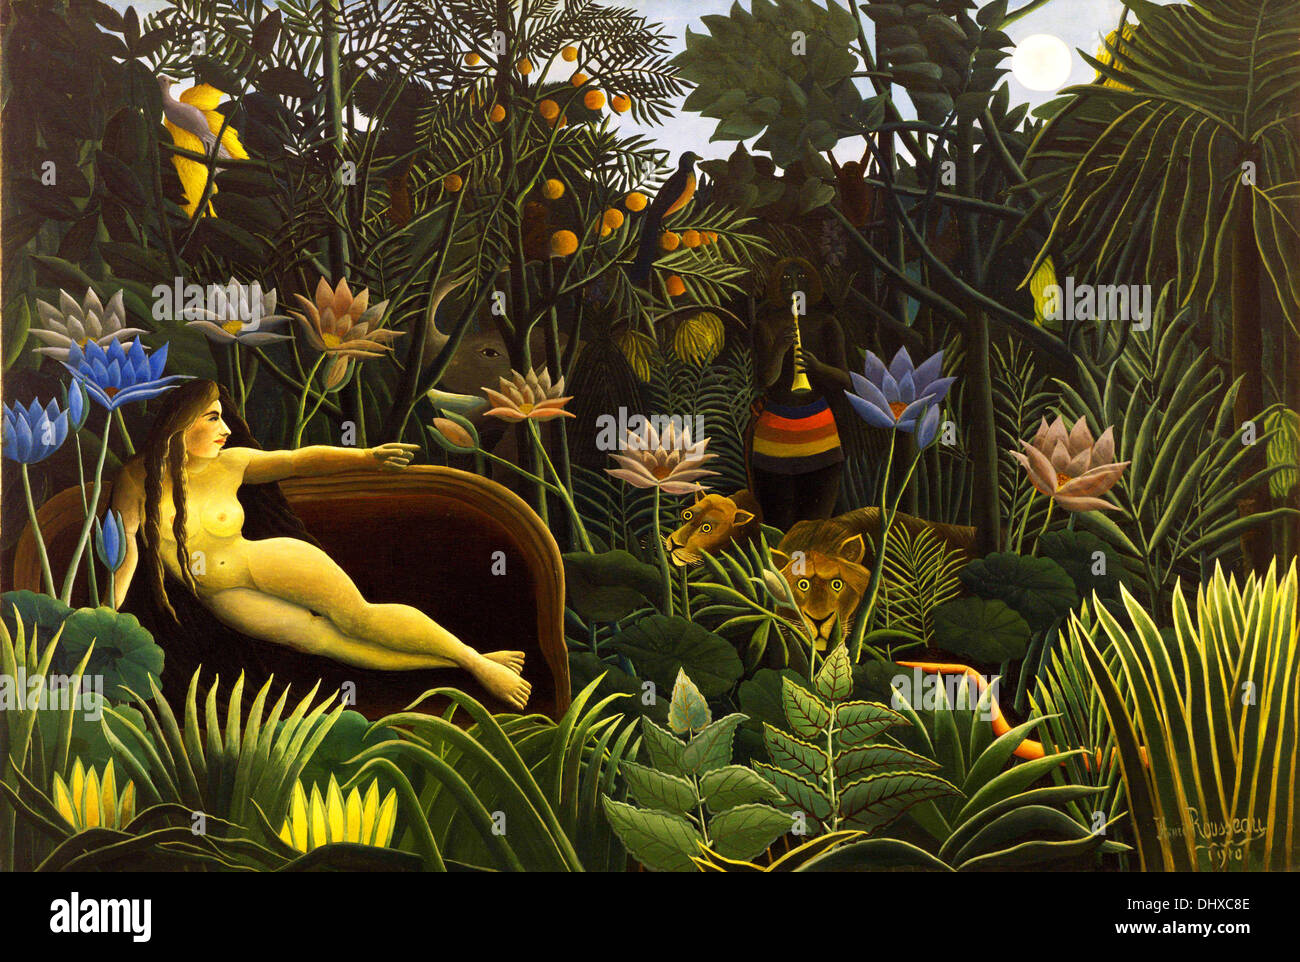 The Dream - by Henri Rousseau, 1910 - Stock Image